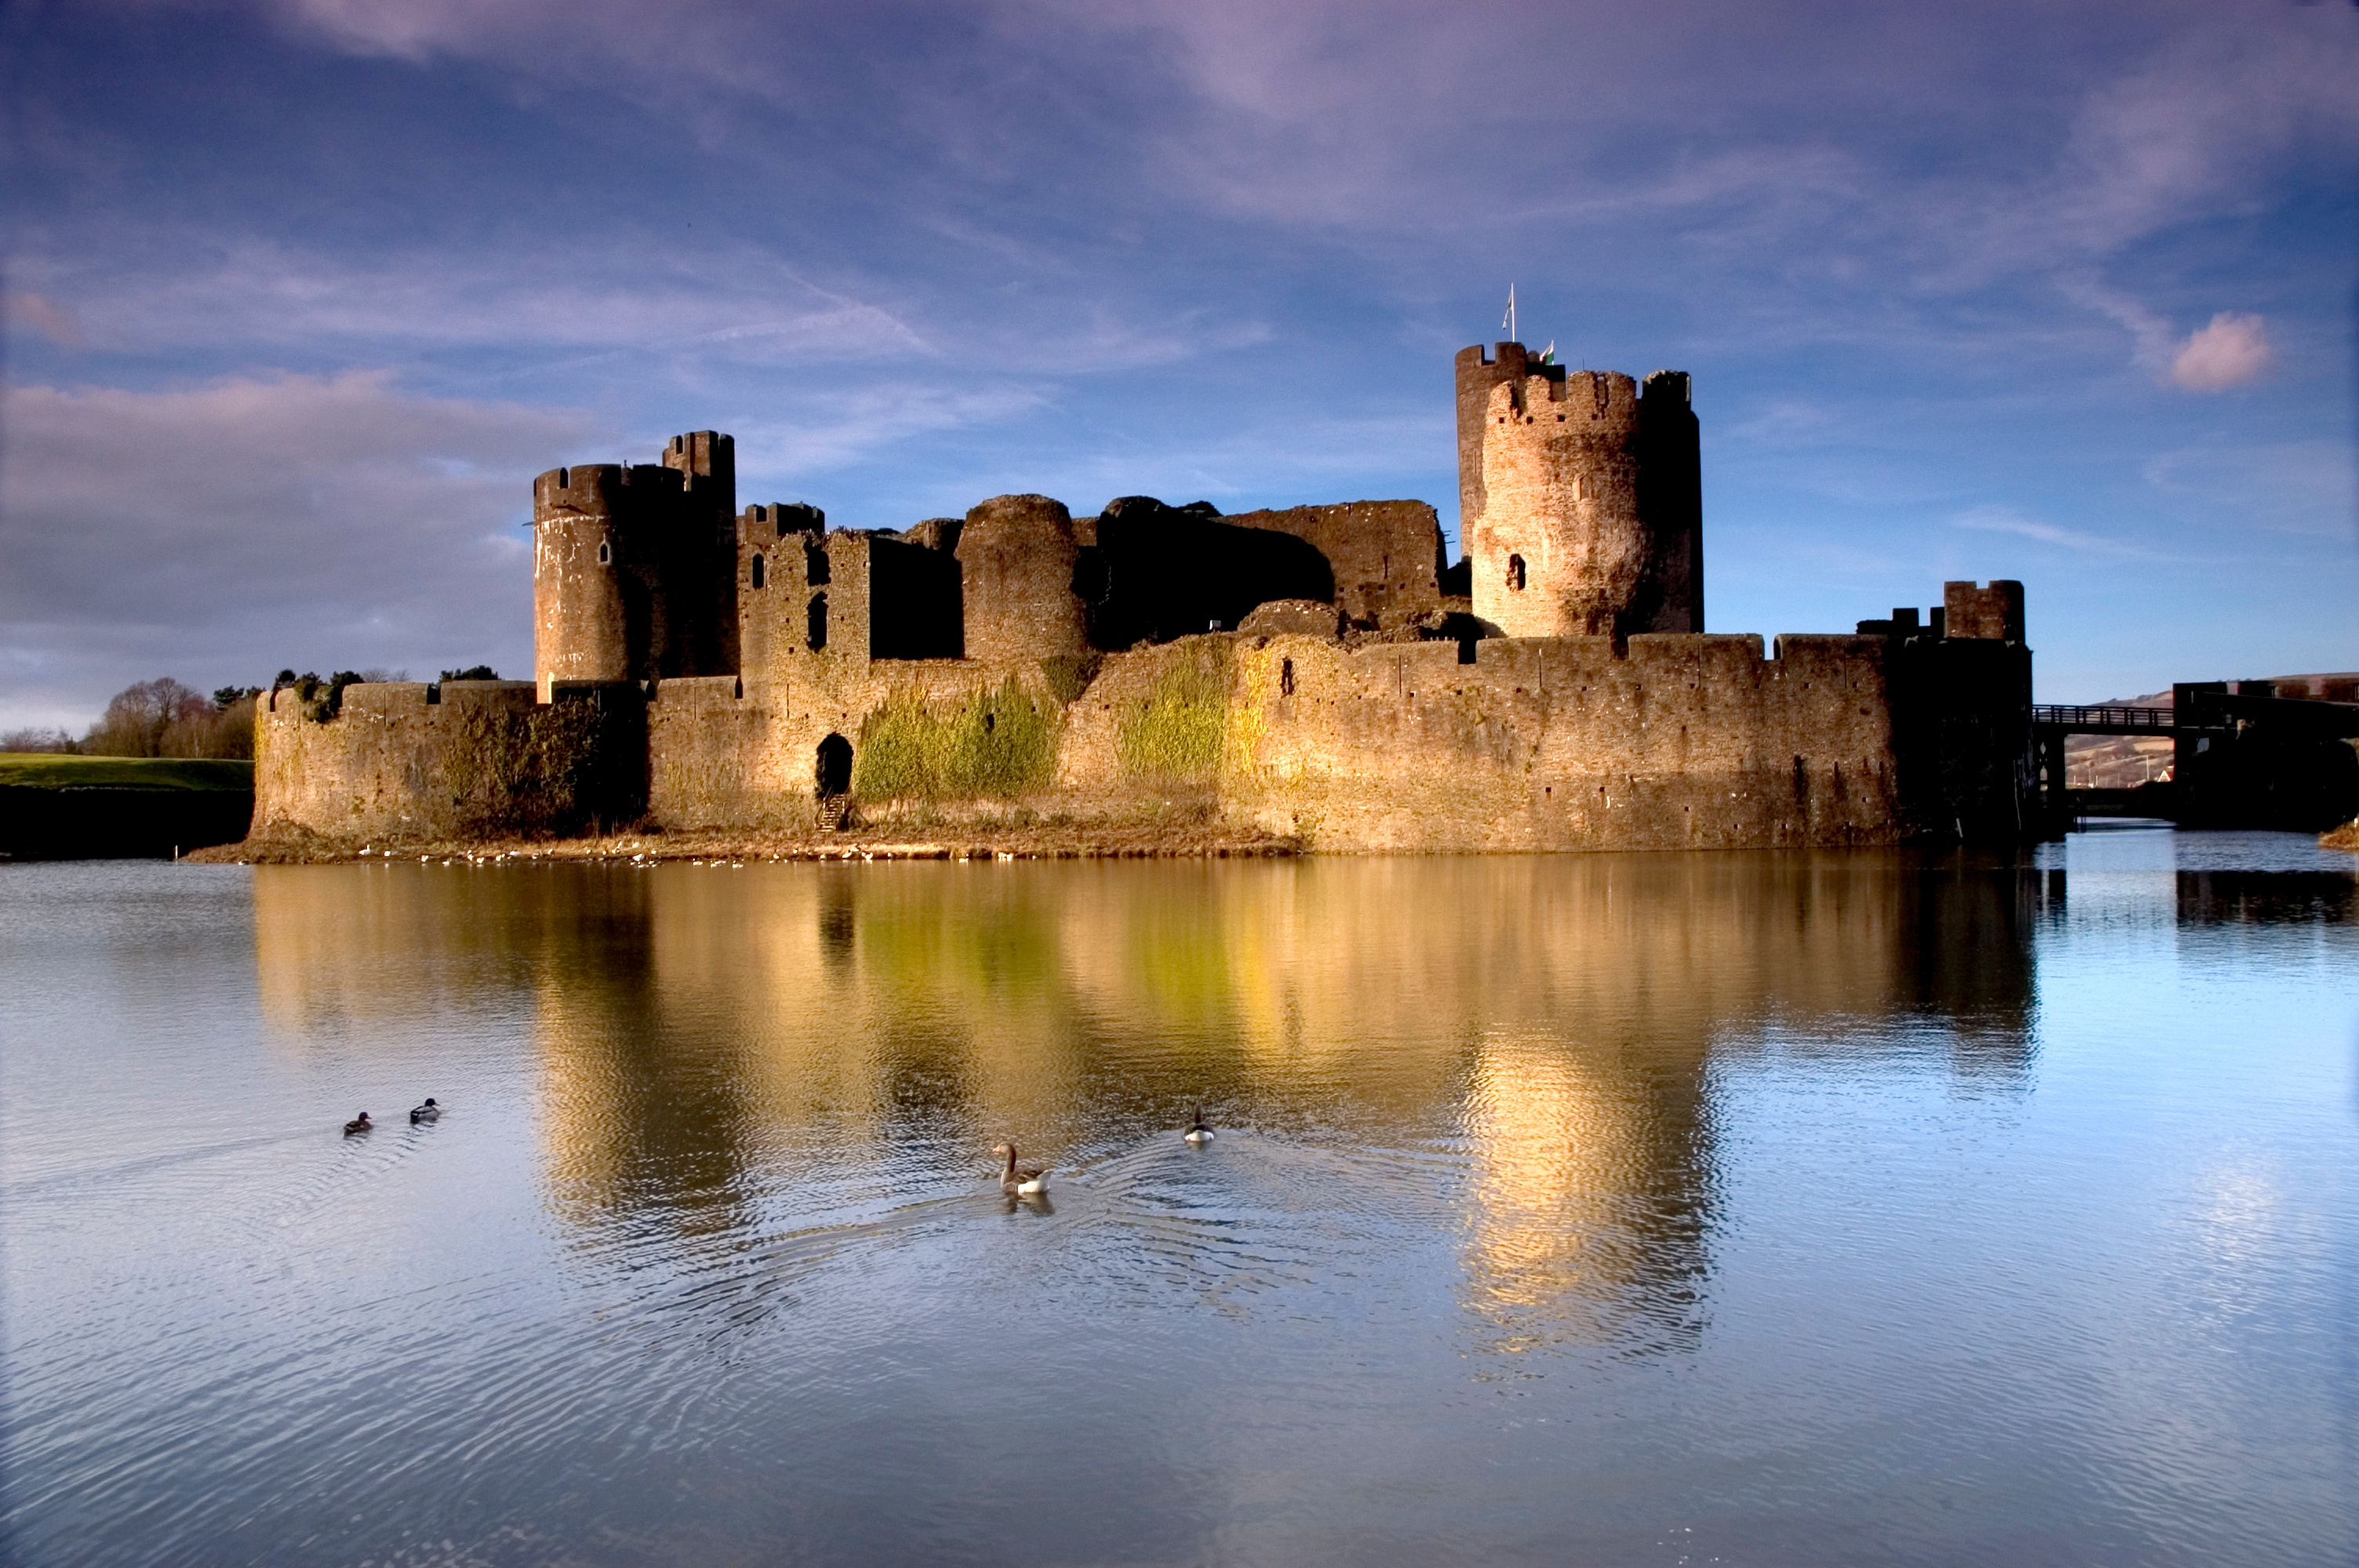 Moats also protect old castles - competitors don't care about history